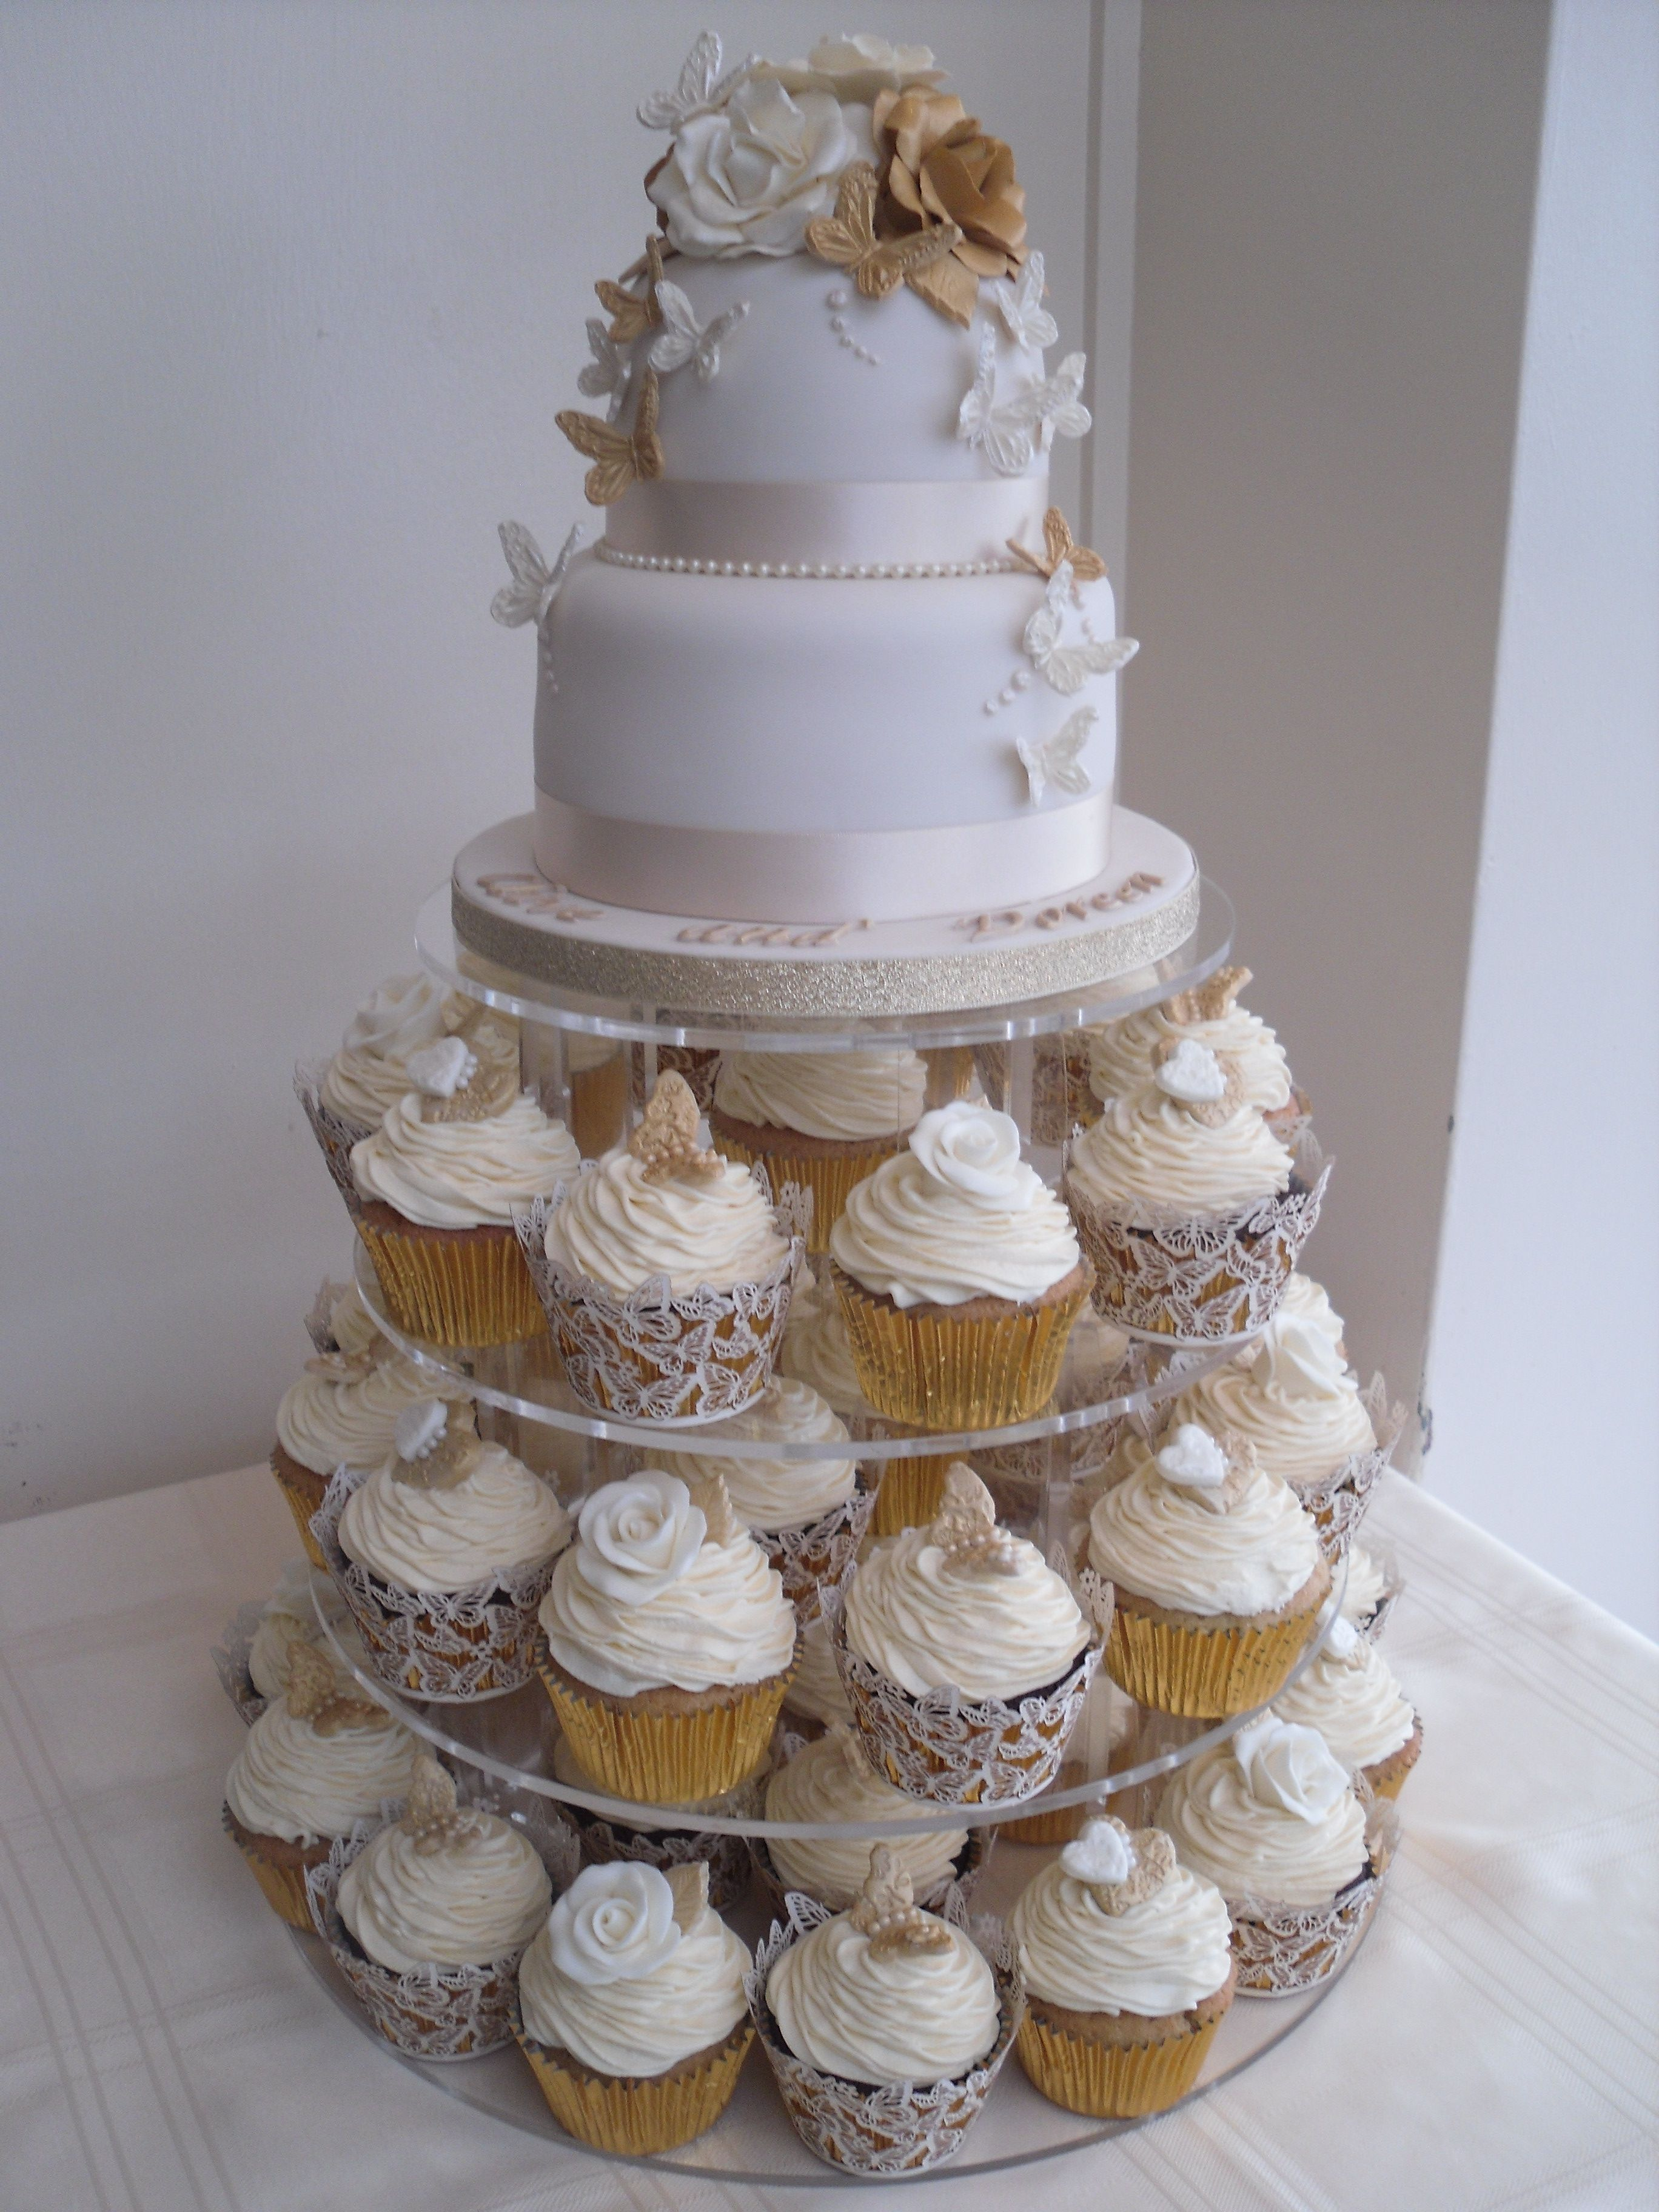 Cake Cupcakes Wedding Cake Wedding Anniversary Cakes 50th Wedding Anniversary Cakes Golden Wedding Anniversary Cake